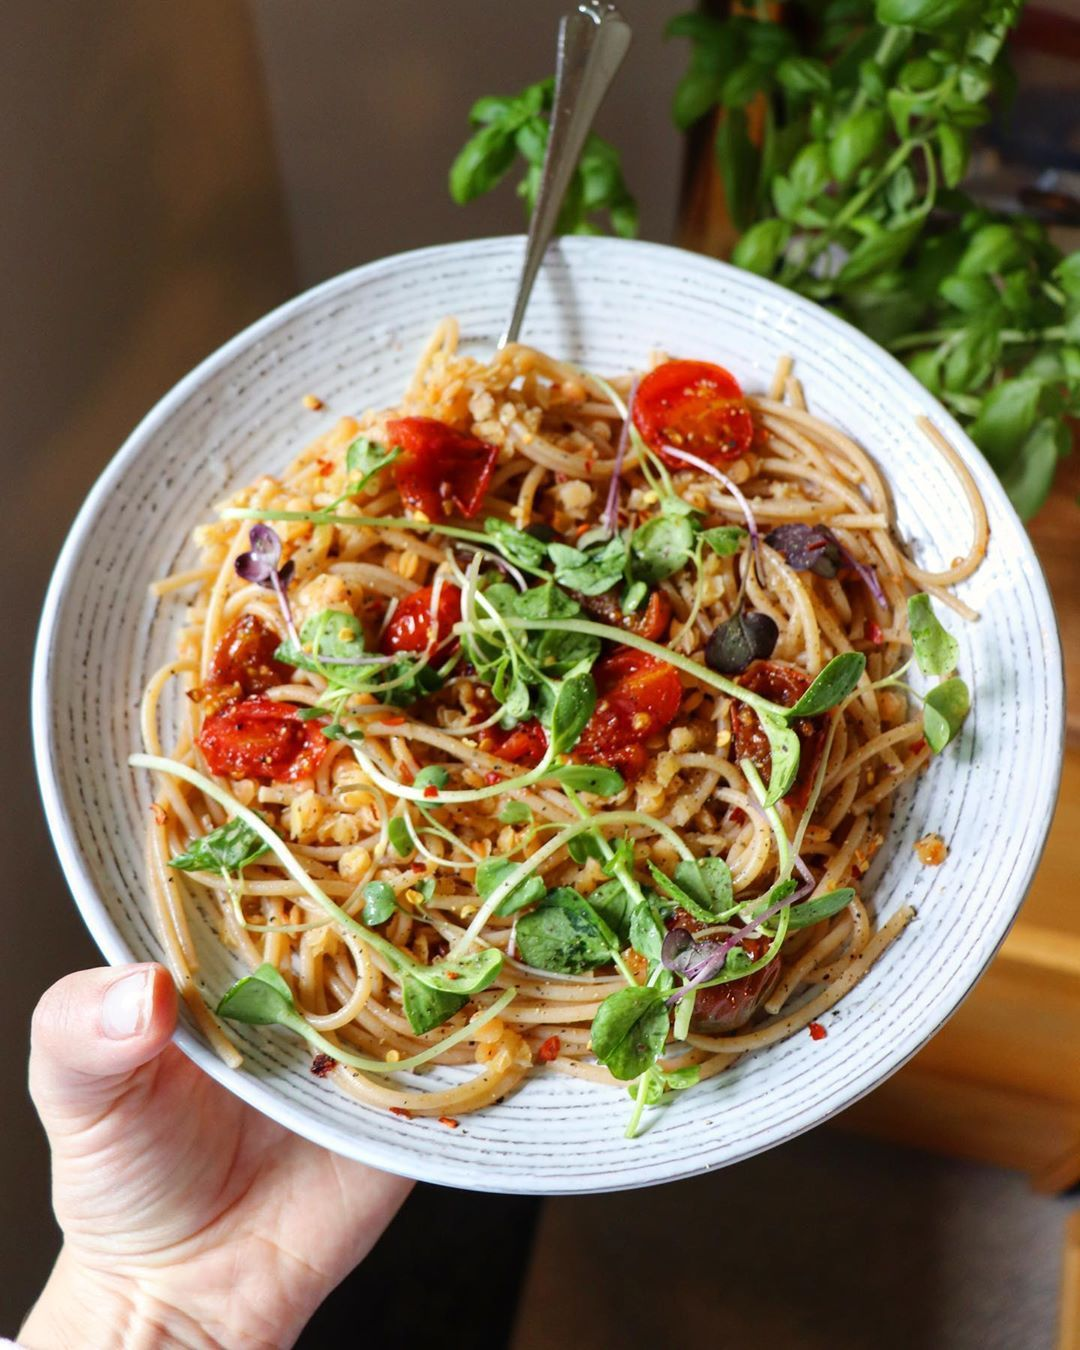 Whole Wheat Spaghetti With Red Lentils Tomatoes Sauteed With Garlic And Pepper And Some Micro Greens And Sprinkled With Pink Salt And Nutritional Yeast